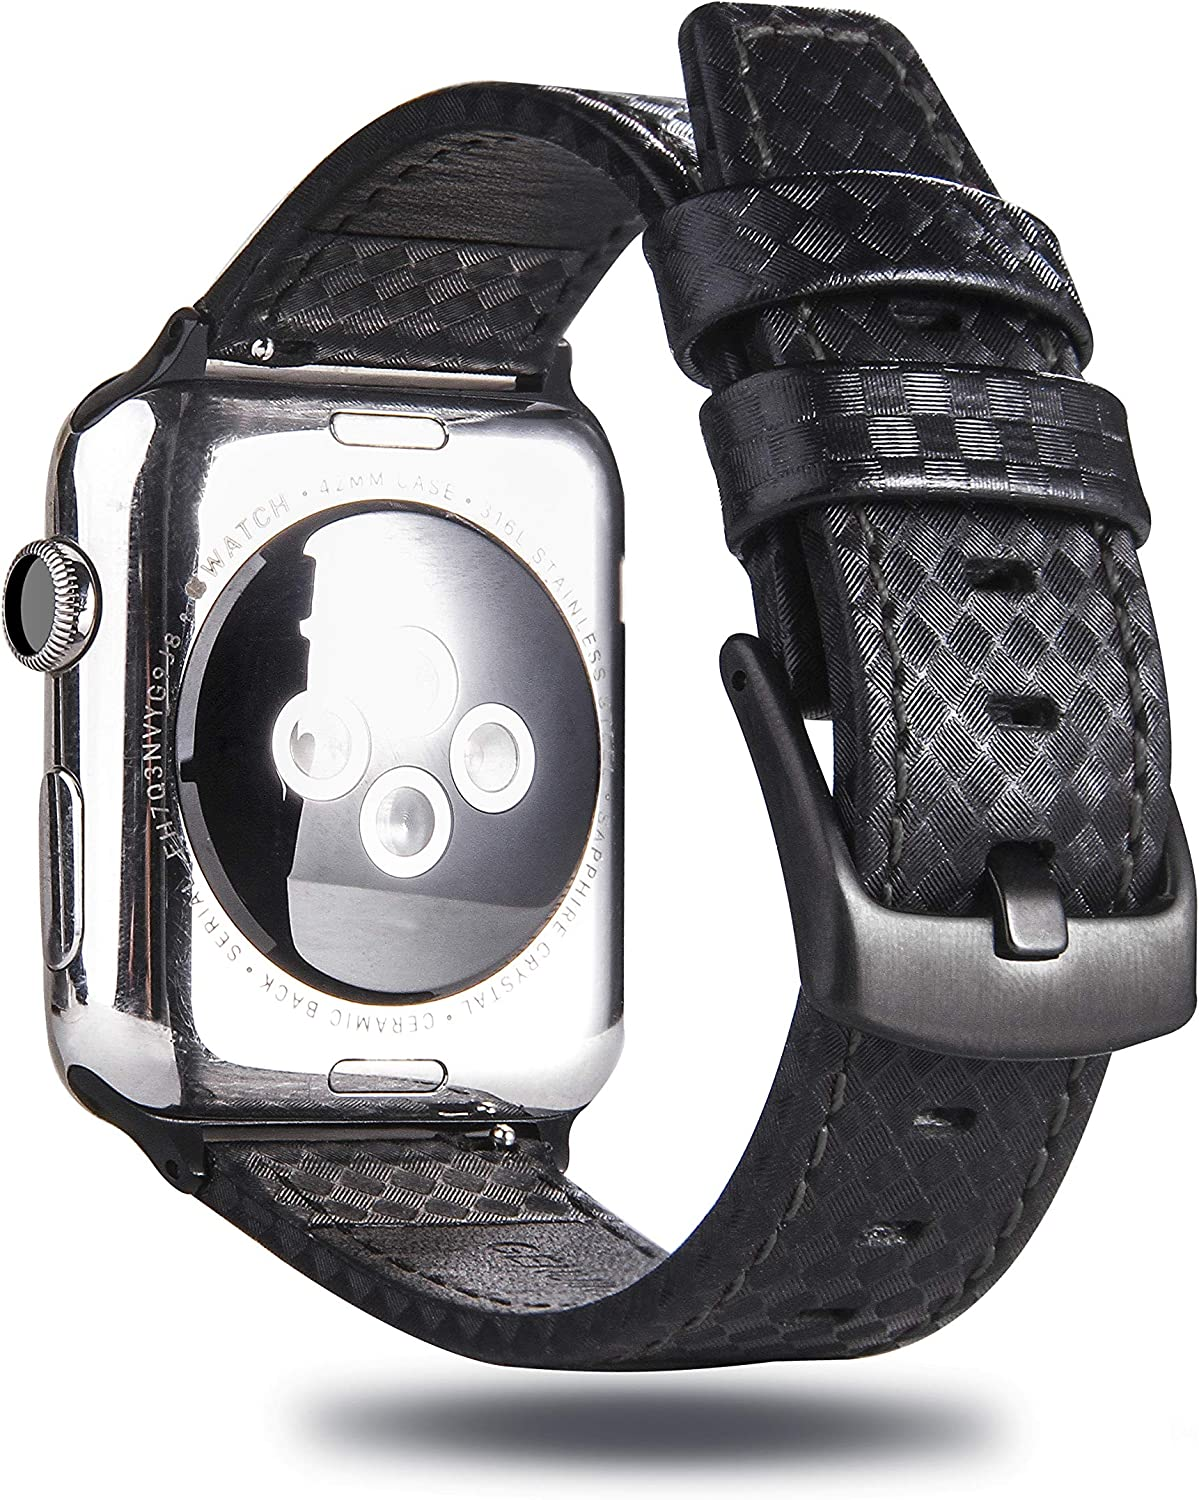 MeShow 44mm 42mm Genuine Leather Carbon Fiber Embossed Pattern with Black Stitching Strap Wrist Band with Secure Metal Clasp Buckle Compatible for Apple Watch Series 6/5/4(44mm)/Series 3/2/1(42mm)